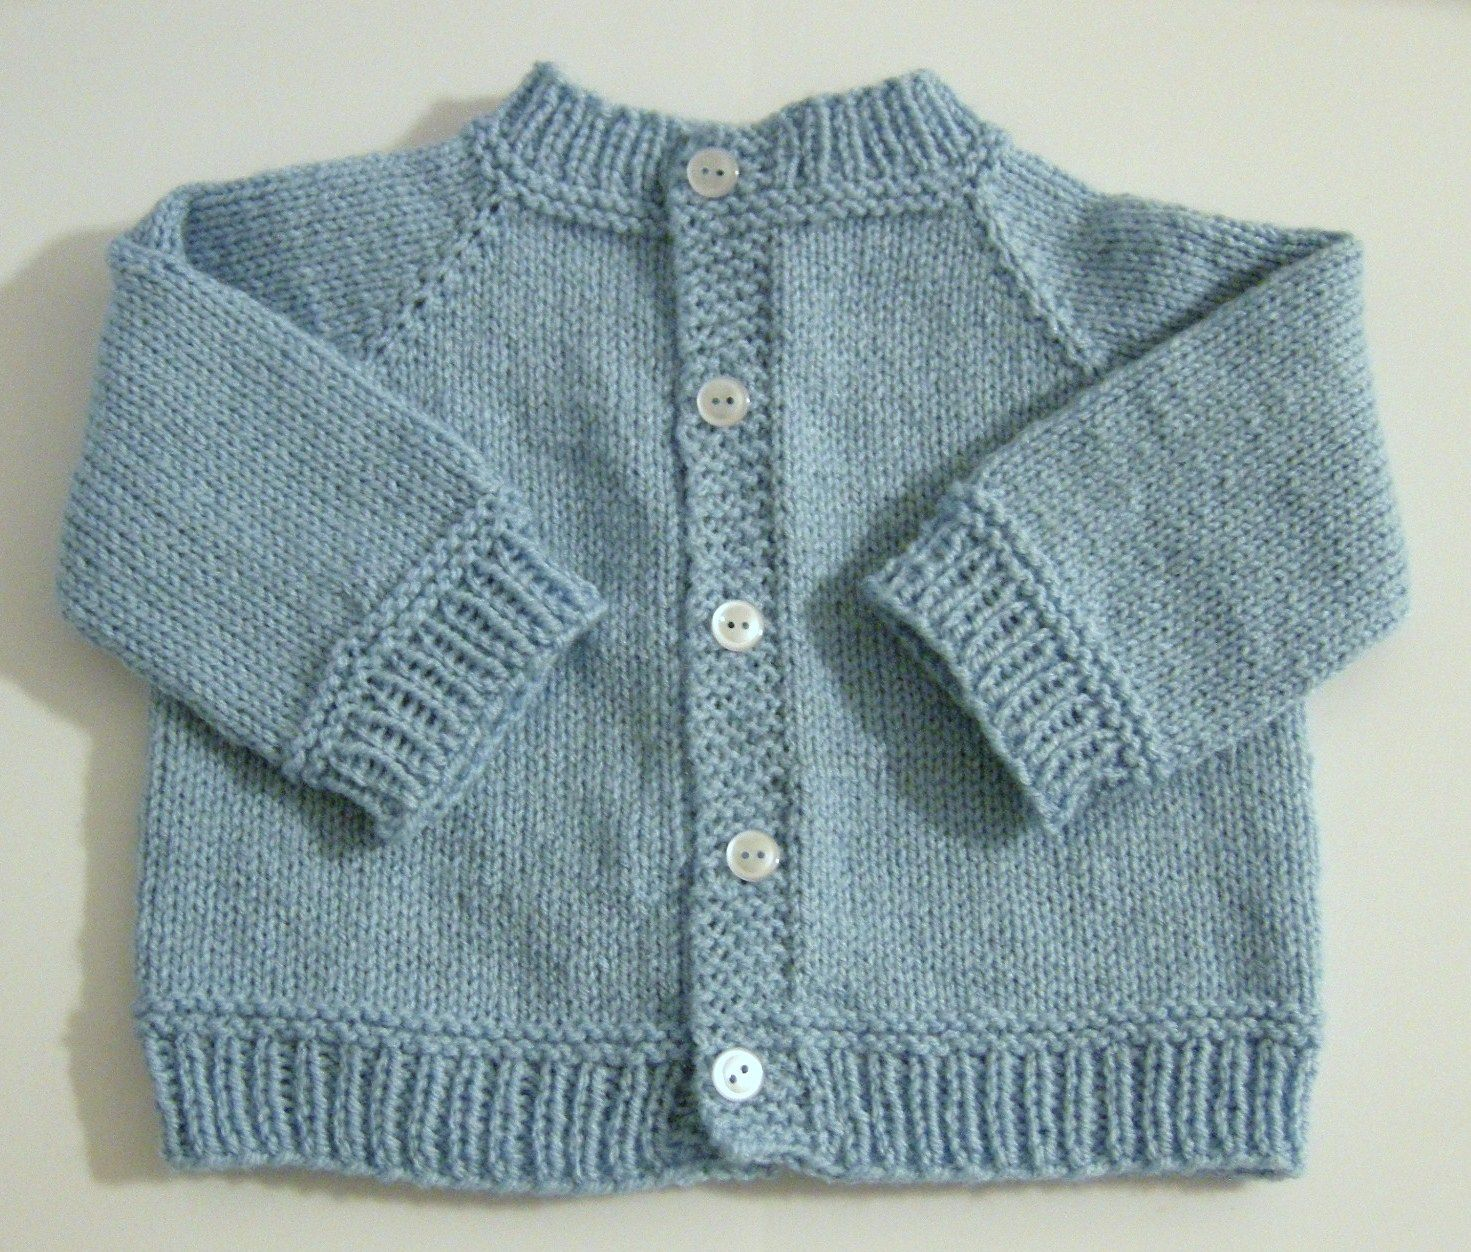 Knitting Topi Baby : Baby s raglan sweater no seams by carole barenys free